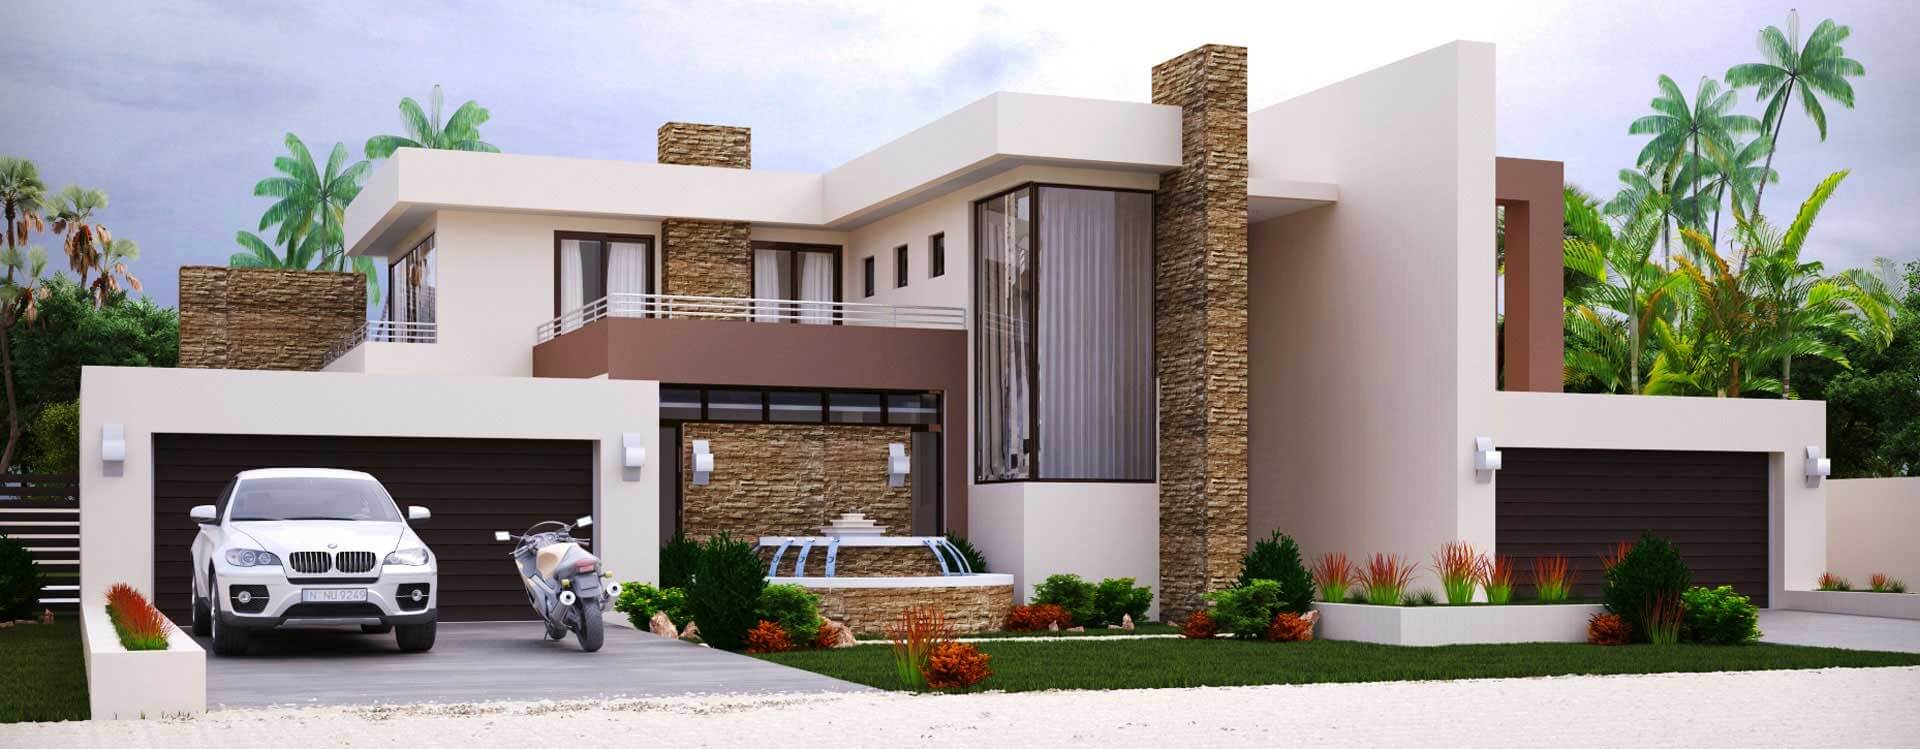 modern style house plan 4 bedroom double storey floor plans home design. Interior Design Ideas. Home Design Ideas